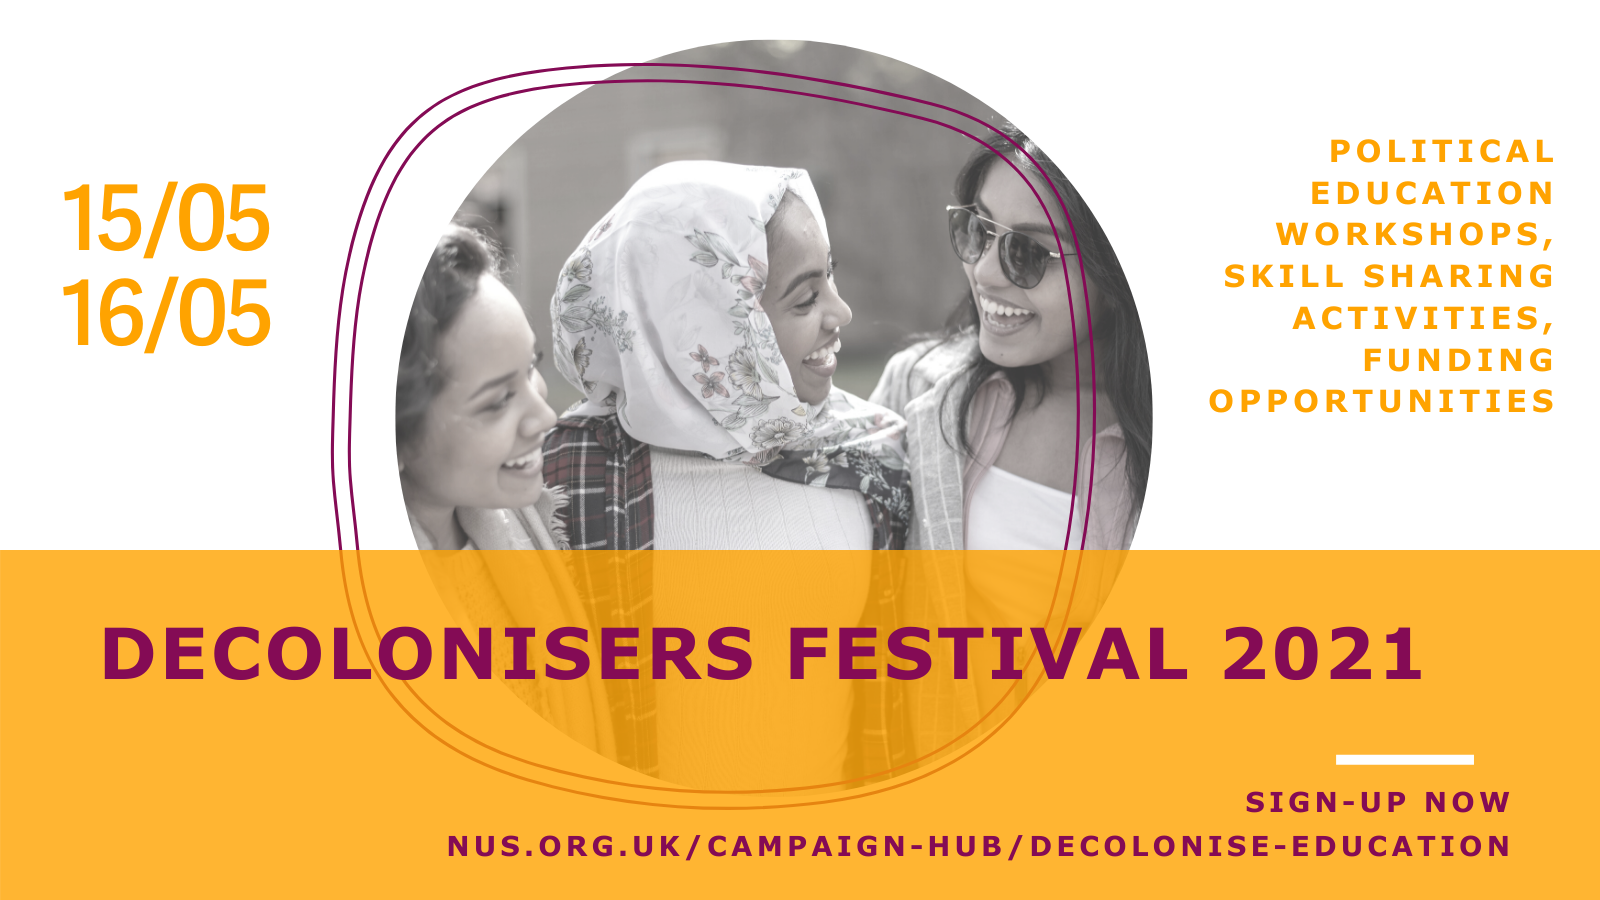 Decolonisers Festival 2021 - Political education workshops, skill-sharing activities, funding opportunities - 15th and 16th May - Sign-up now nus.org.uk/campaign-hub/decolonise-education